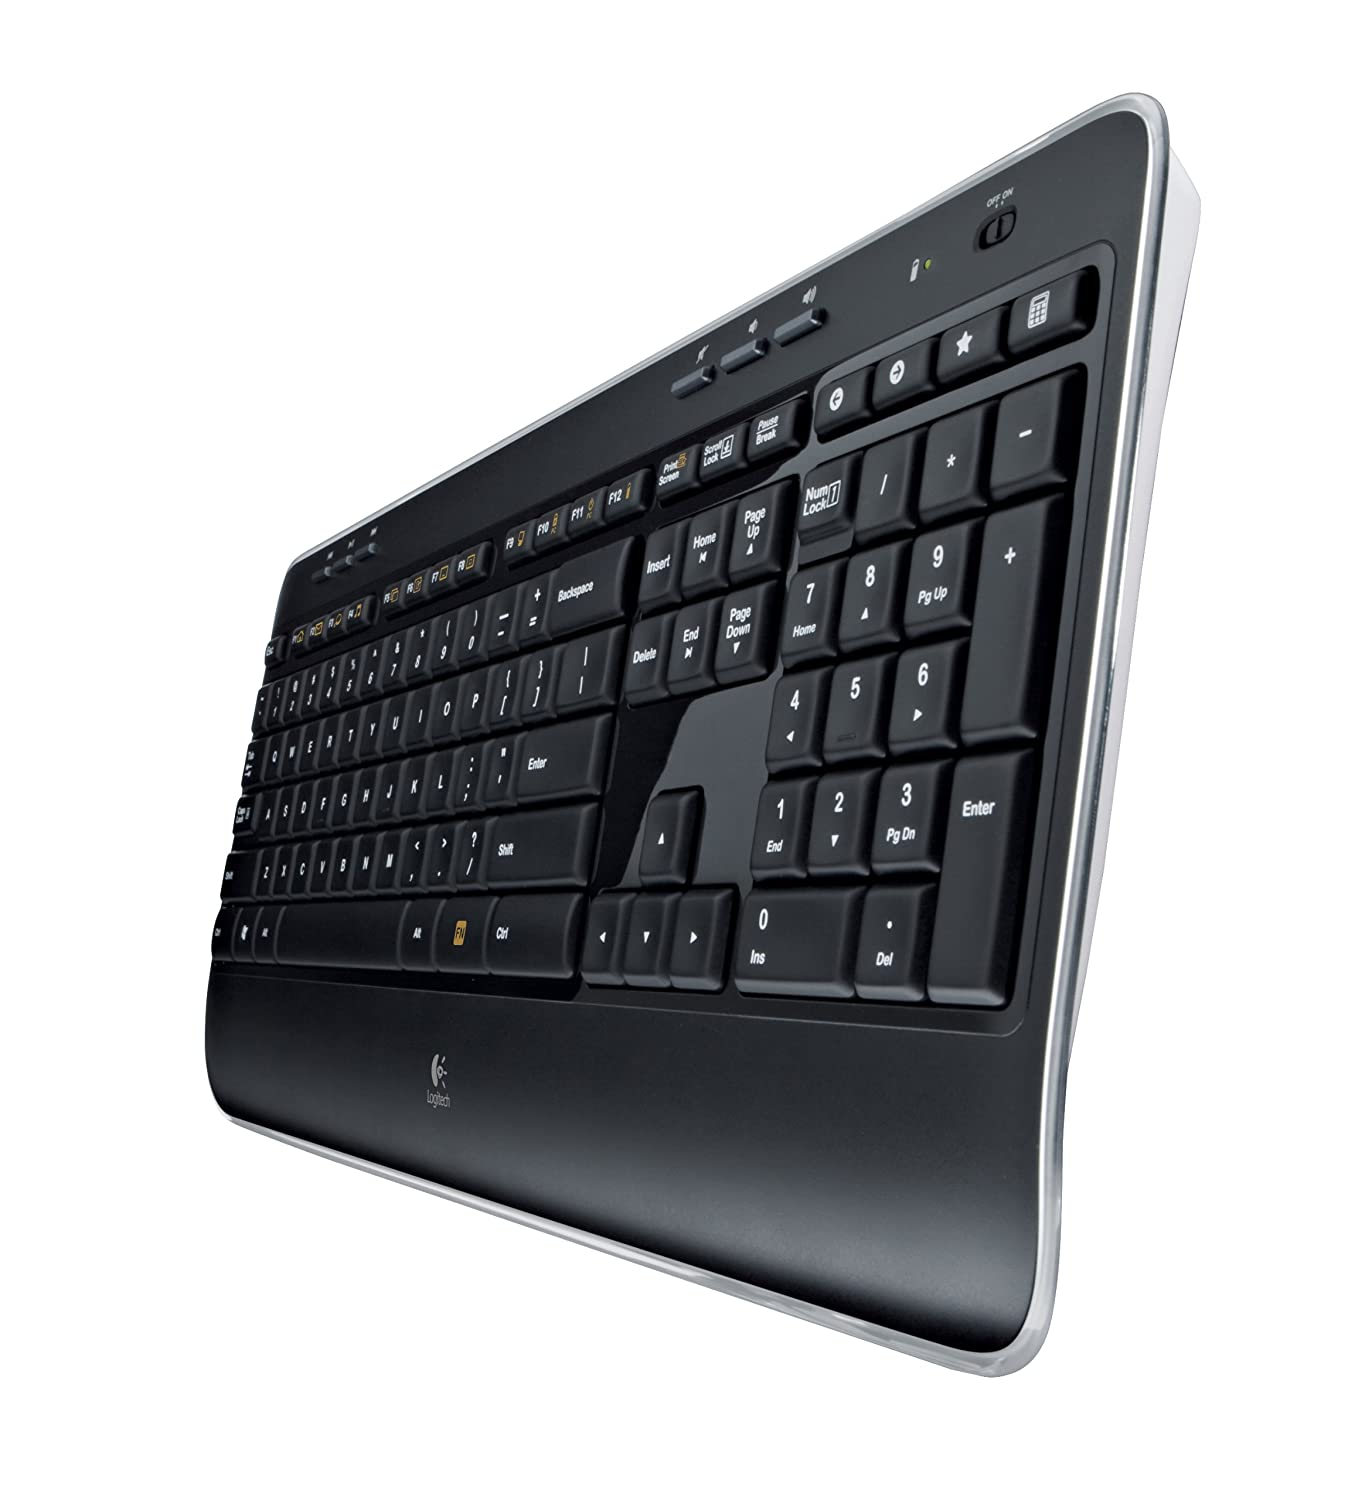 Logitech Mk520 Wireless Keyboard And Mouse Combo Mk220 Original Long Battery Life Secure 24ghz Connectivity Electronics